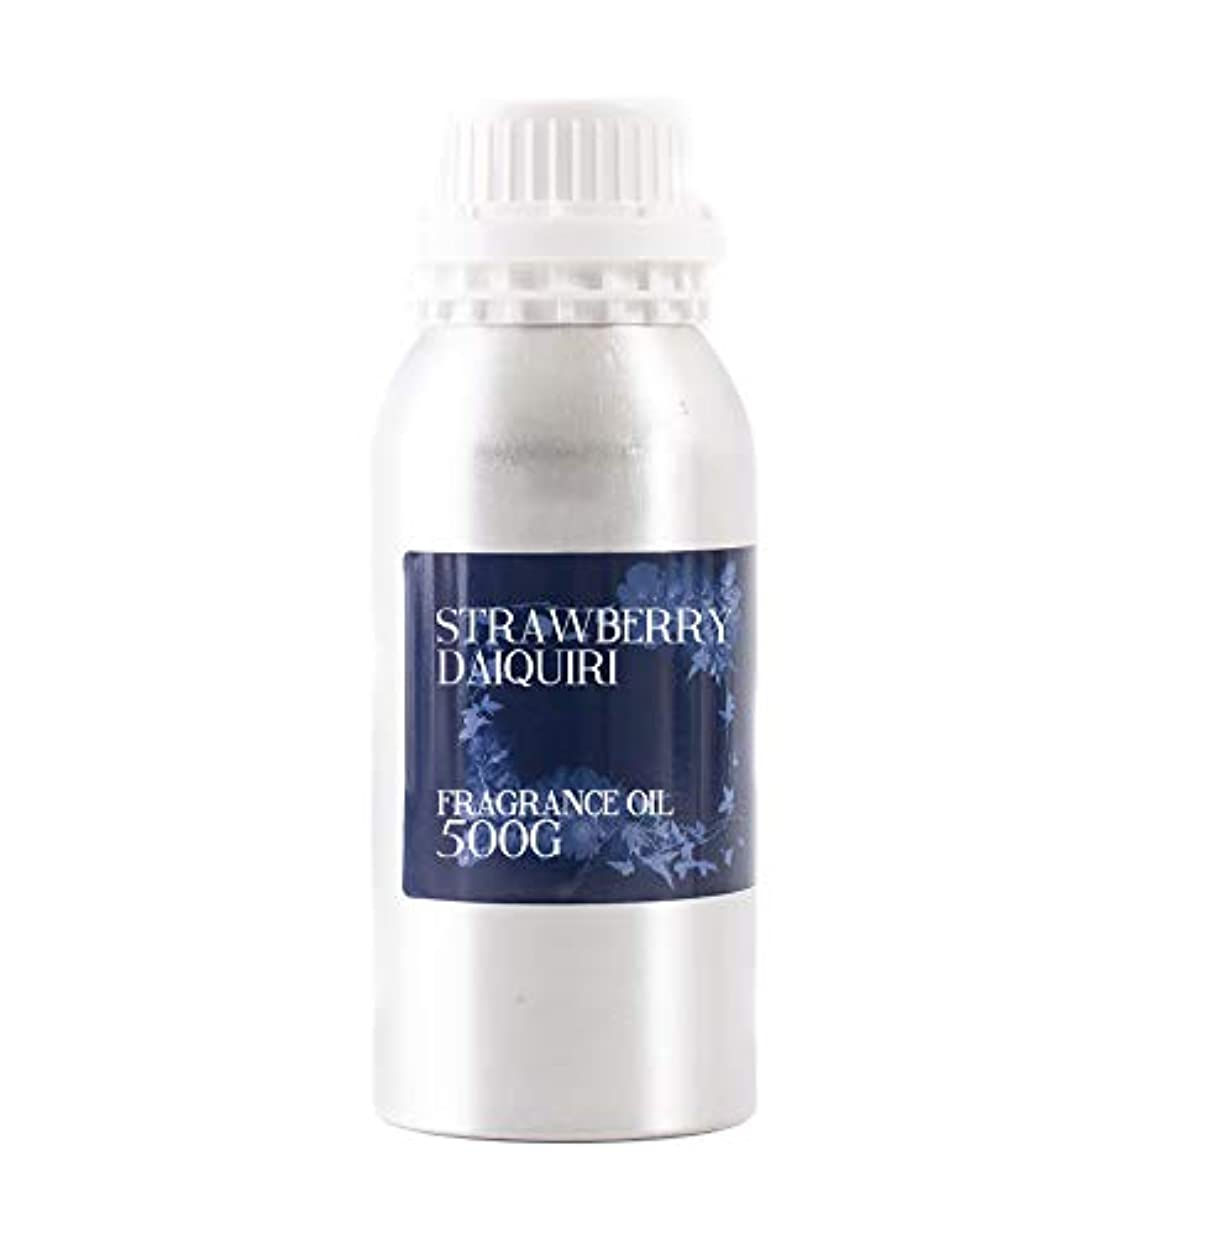 アメリカ劣る提案するMystic Moments | Strawberry Daiquiri Fragrance Oil - 500g